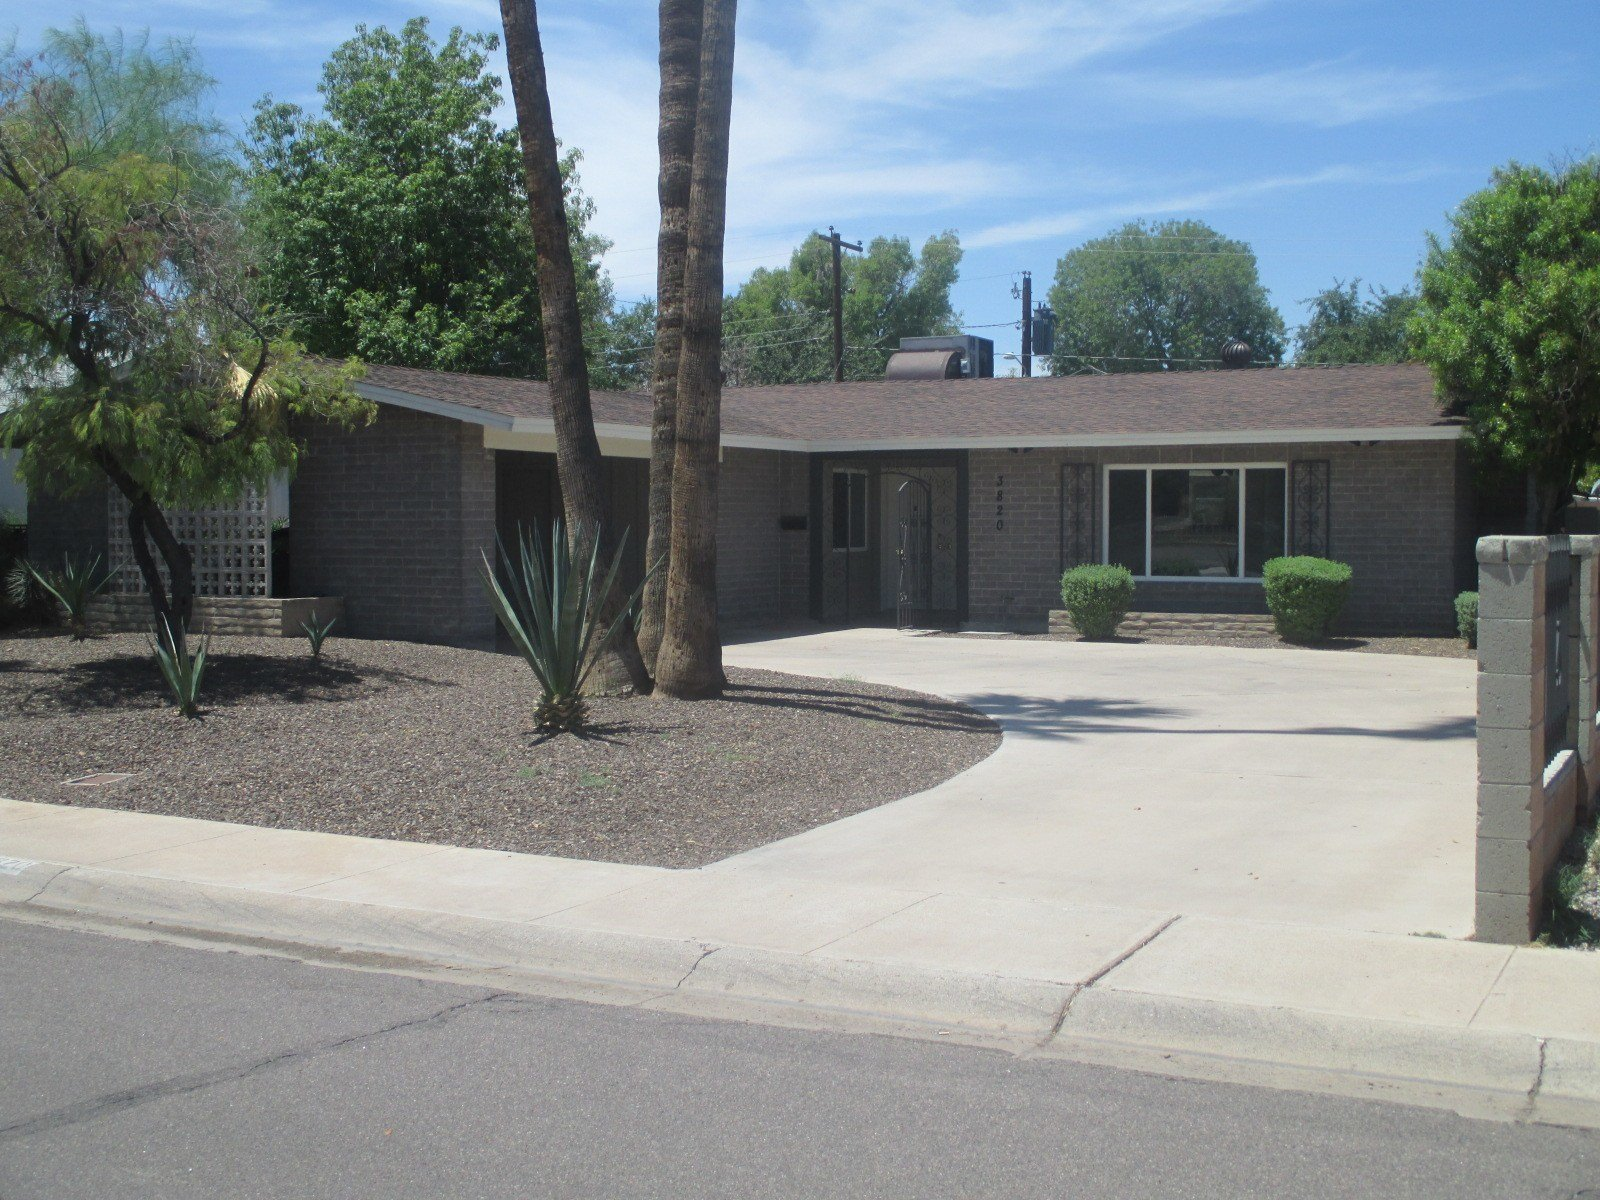 Best 6 Bedrm House For Rent Tempe Az Krk Realty And Management With Pictures